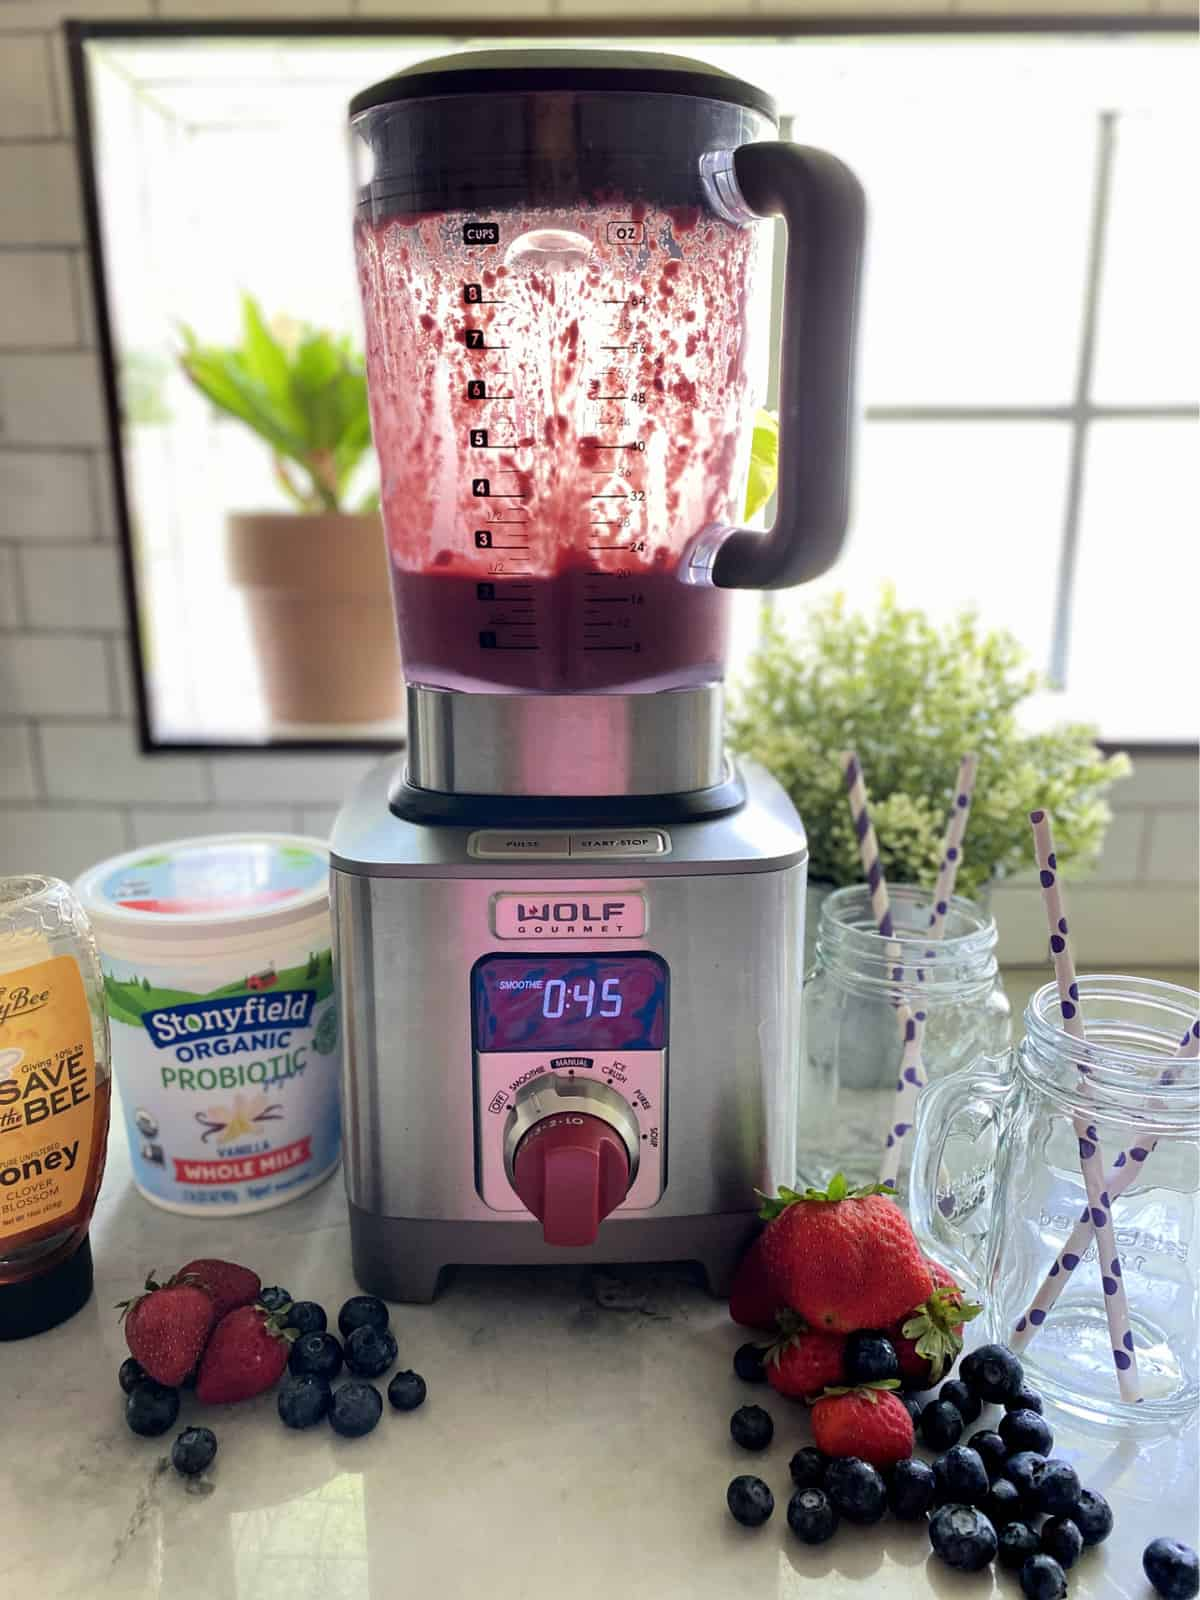 Wolf gourmet blender with purple smoothie in blender, clear glasses and ingredients next to blender.